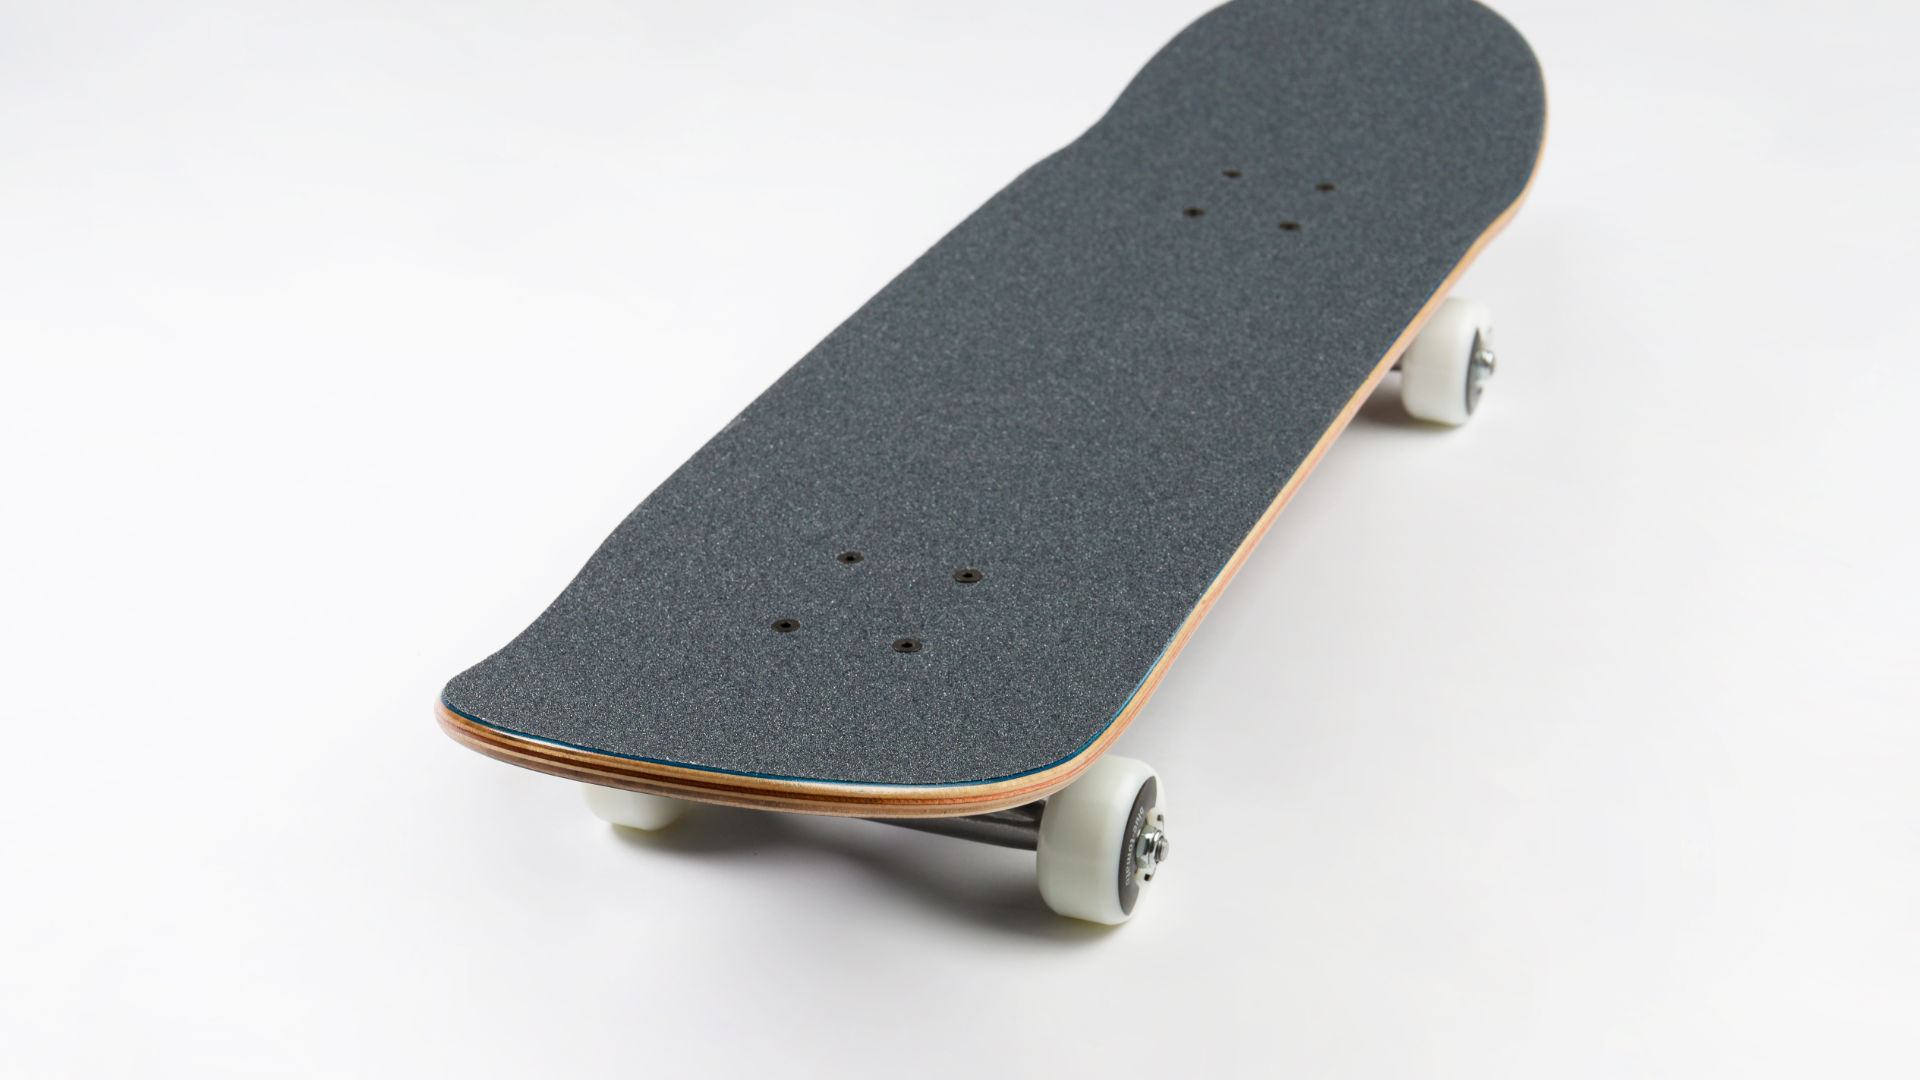 Skateboard deck length from nose to tail